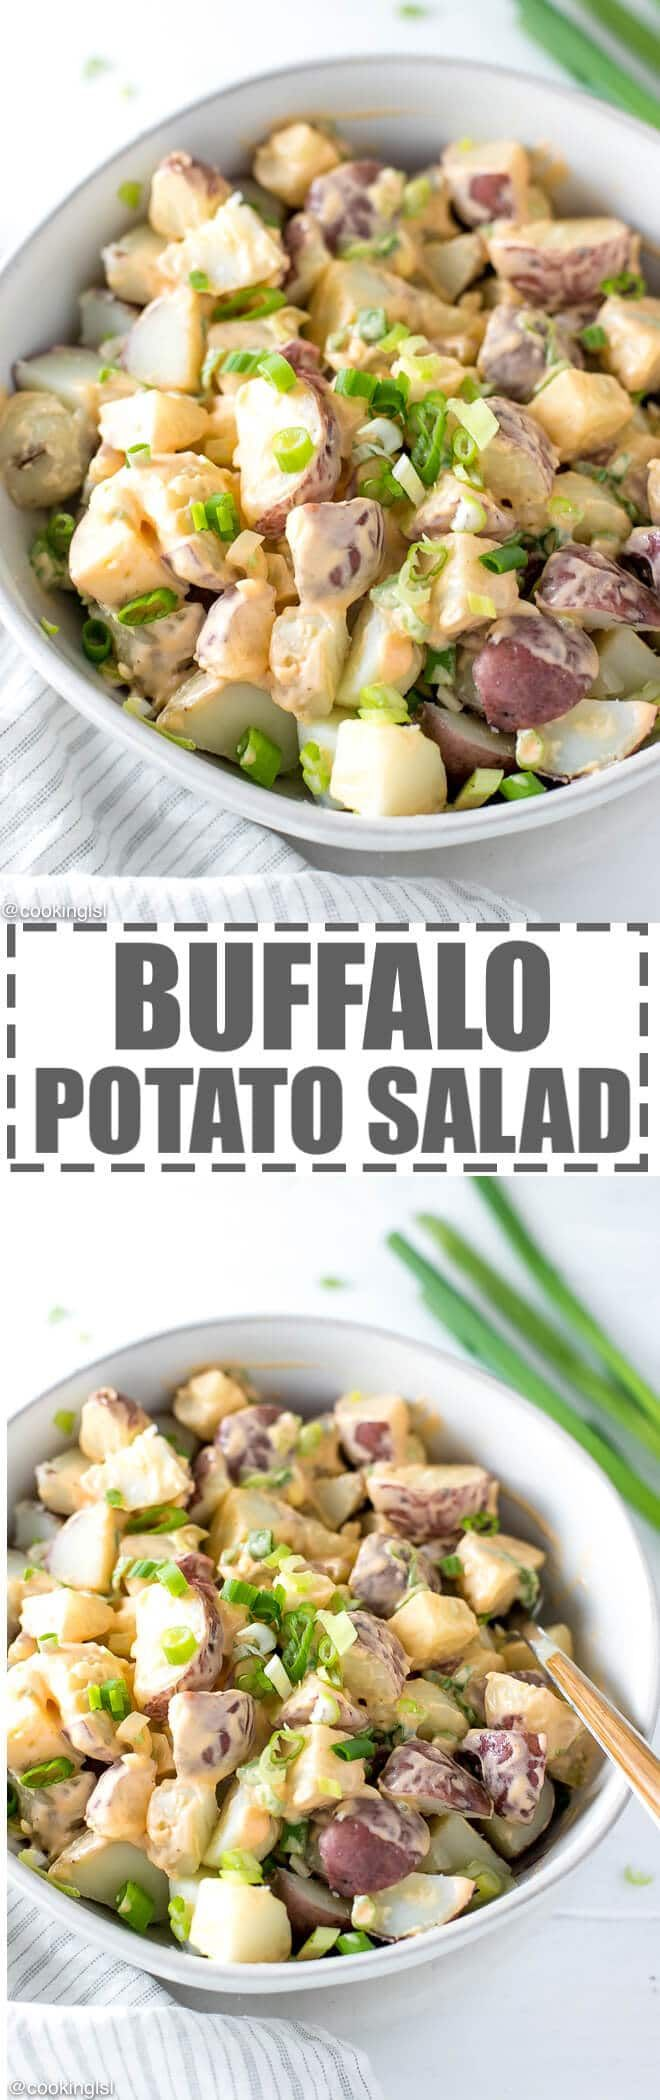 Buffalo Potato Salad Recipe - boiled small red potatoes with a creamy buffalo dressing, made with hot buffalo sauce, mayo and yogurt. Topped with chopped scallions. Great for a party, game day or celebration. Low calorie and full of flavor. via @cookinglsl